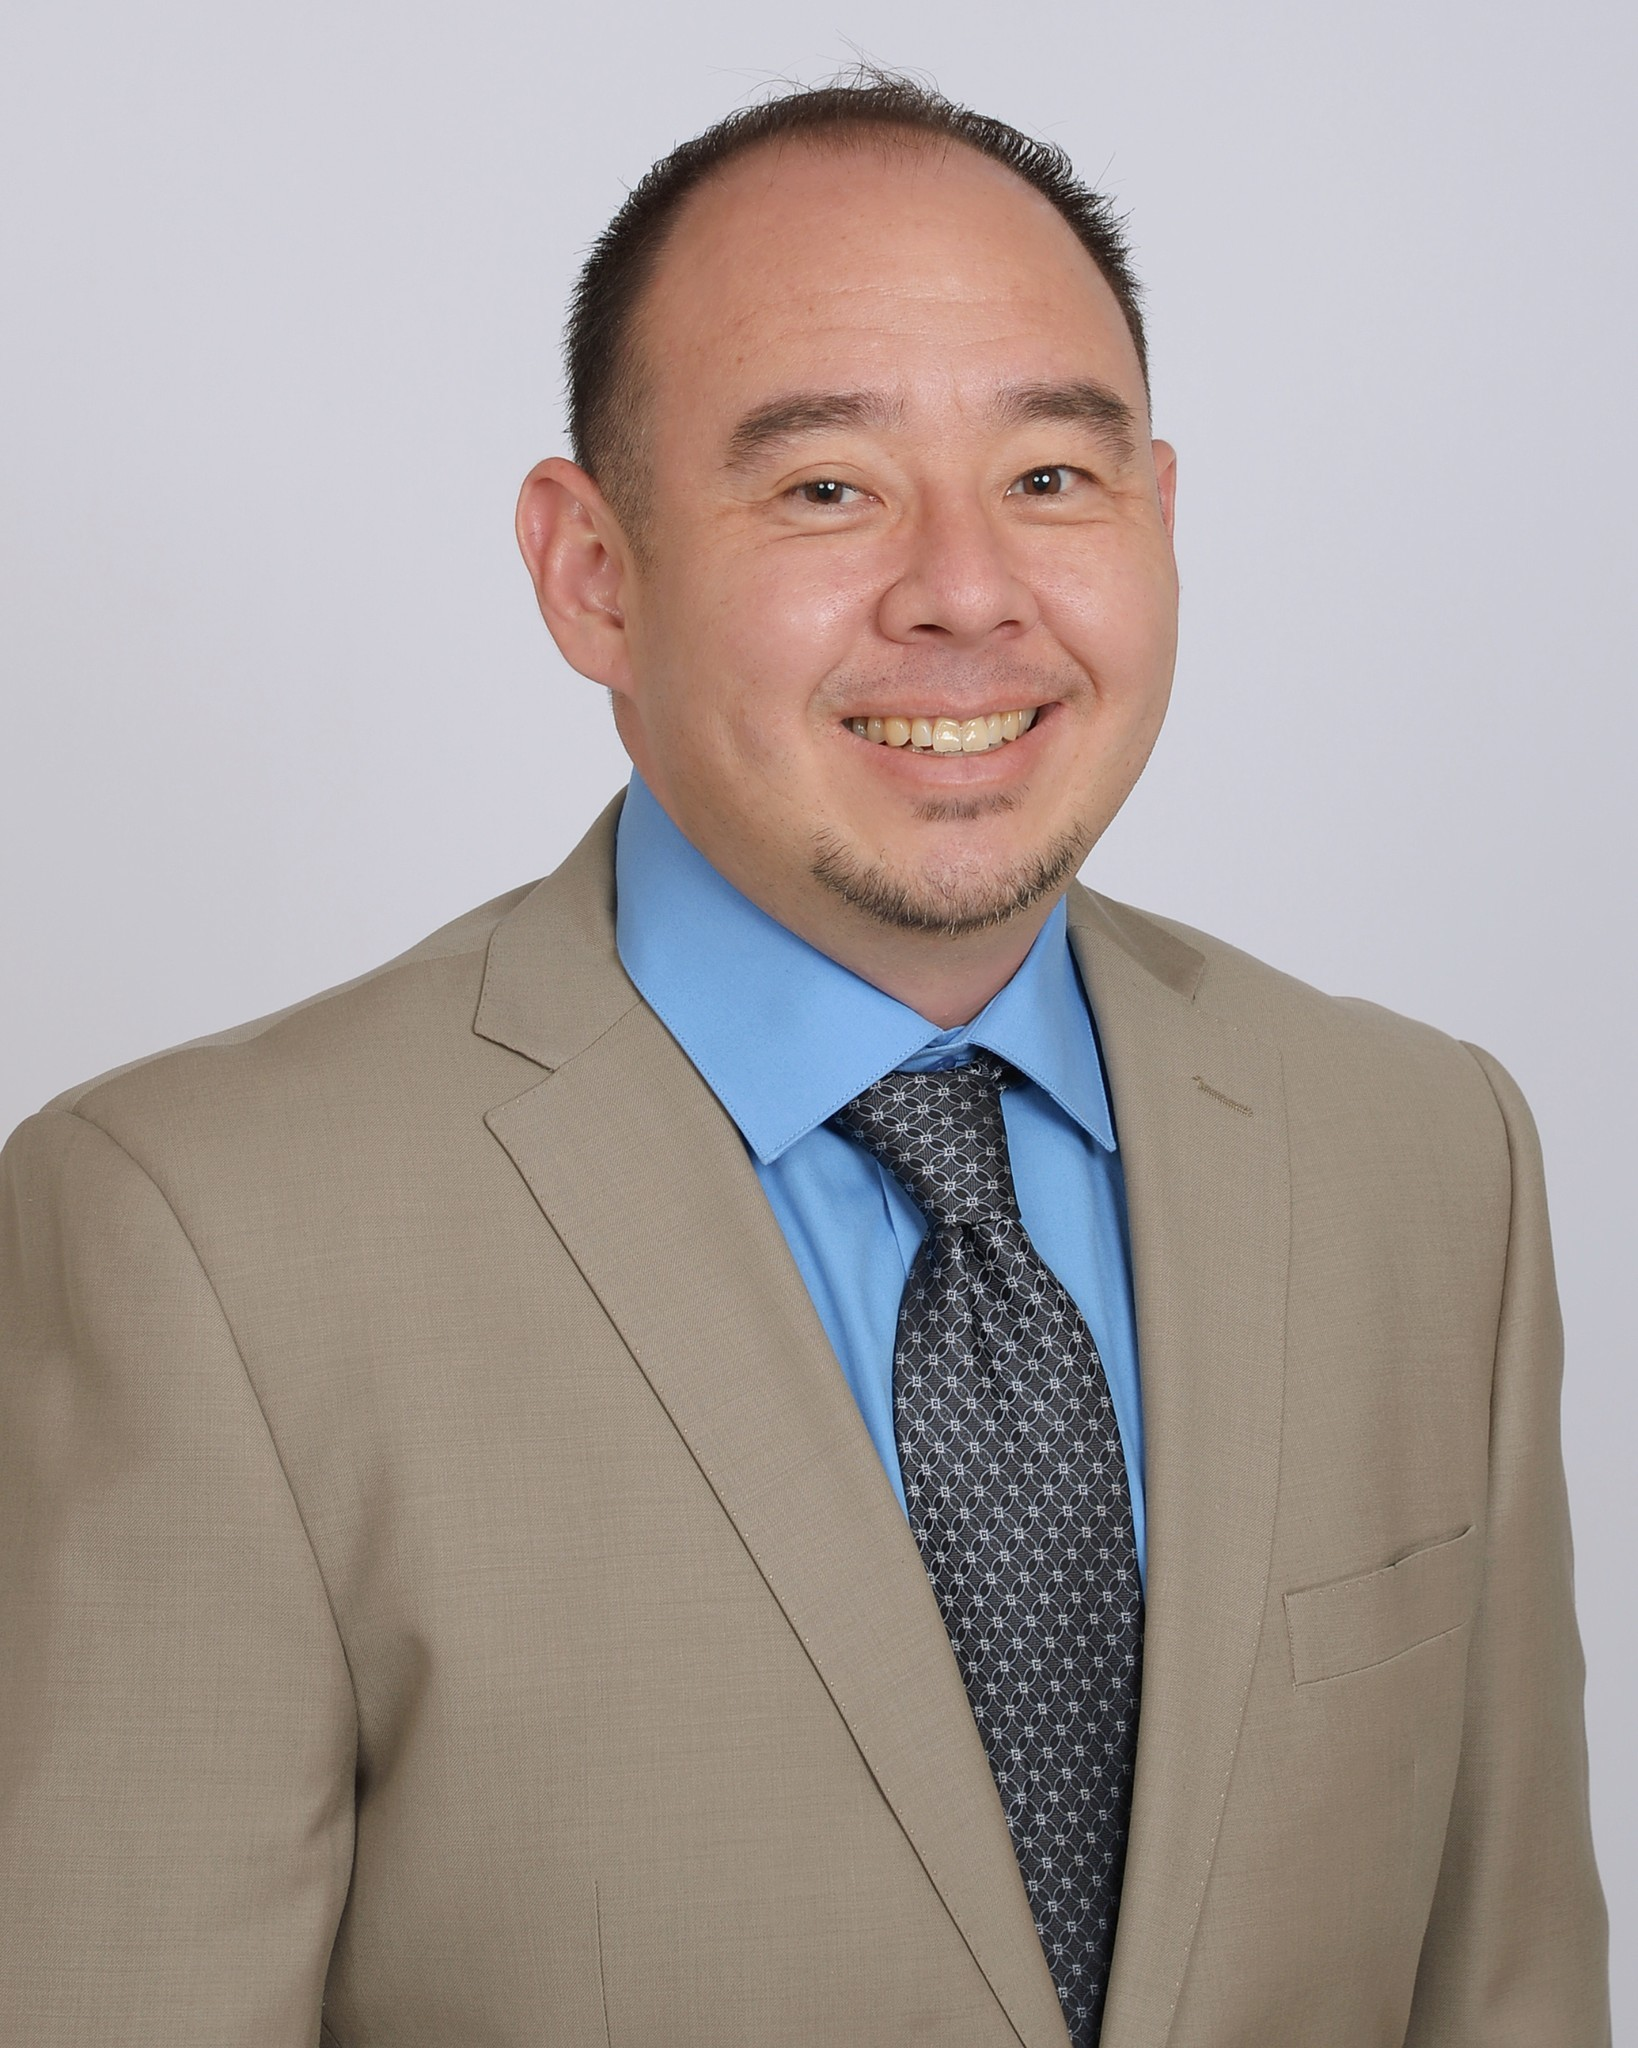 Brian Couey, PsyD, LAADC, CATC-IV, CAMF, is the director of outpatient services at the new Betty Ford Center in Del Mar Heights in north San Diego.